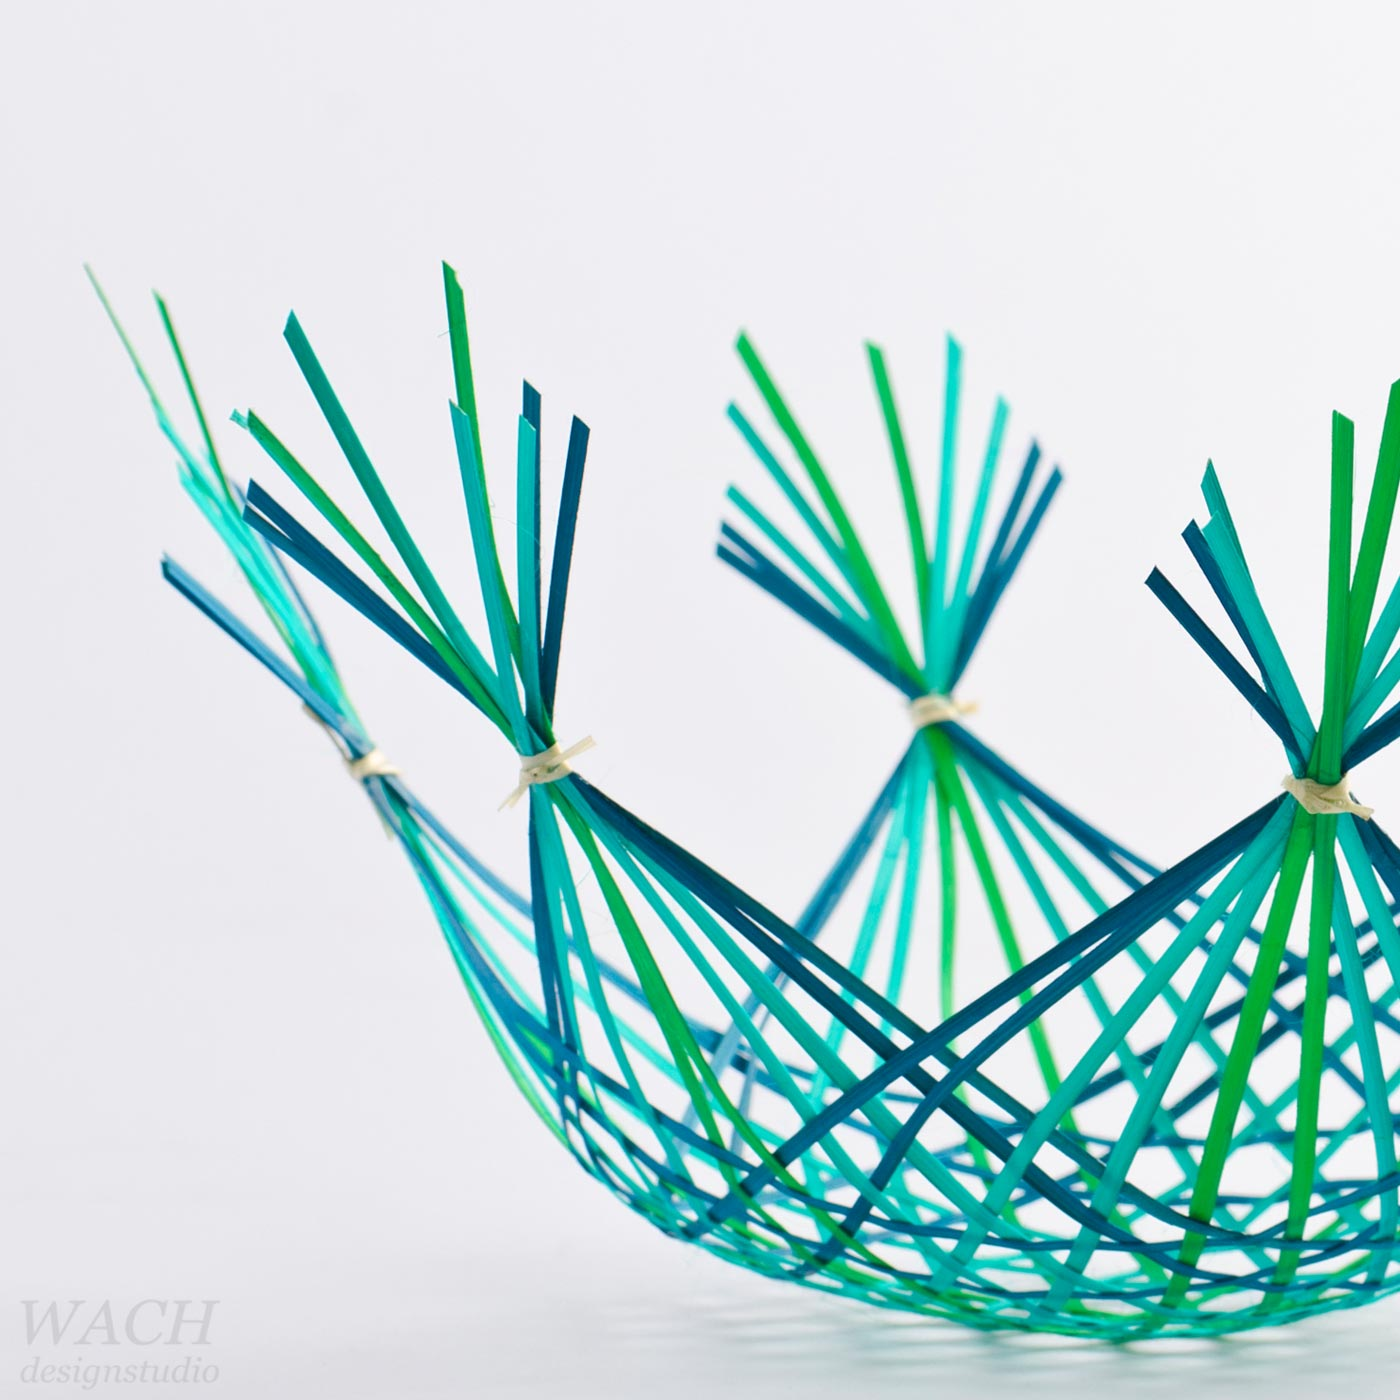 Studio Photography of Gradient Basket designed by WACH designstudio for Hanoi Design Centre and Vietcraft